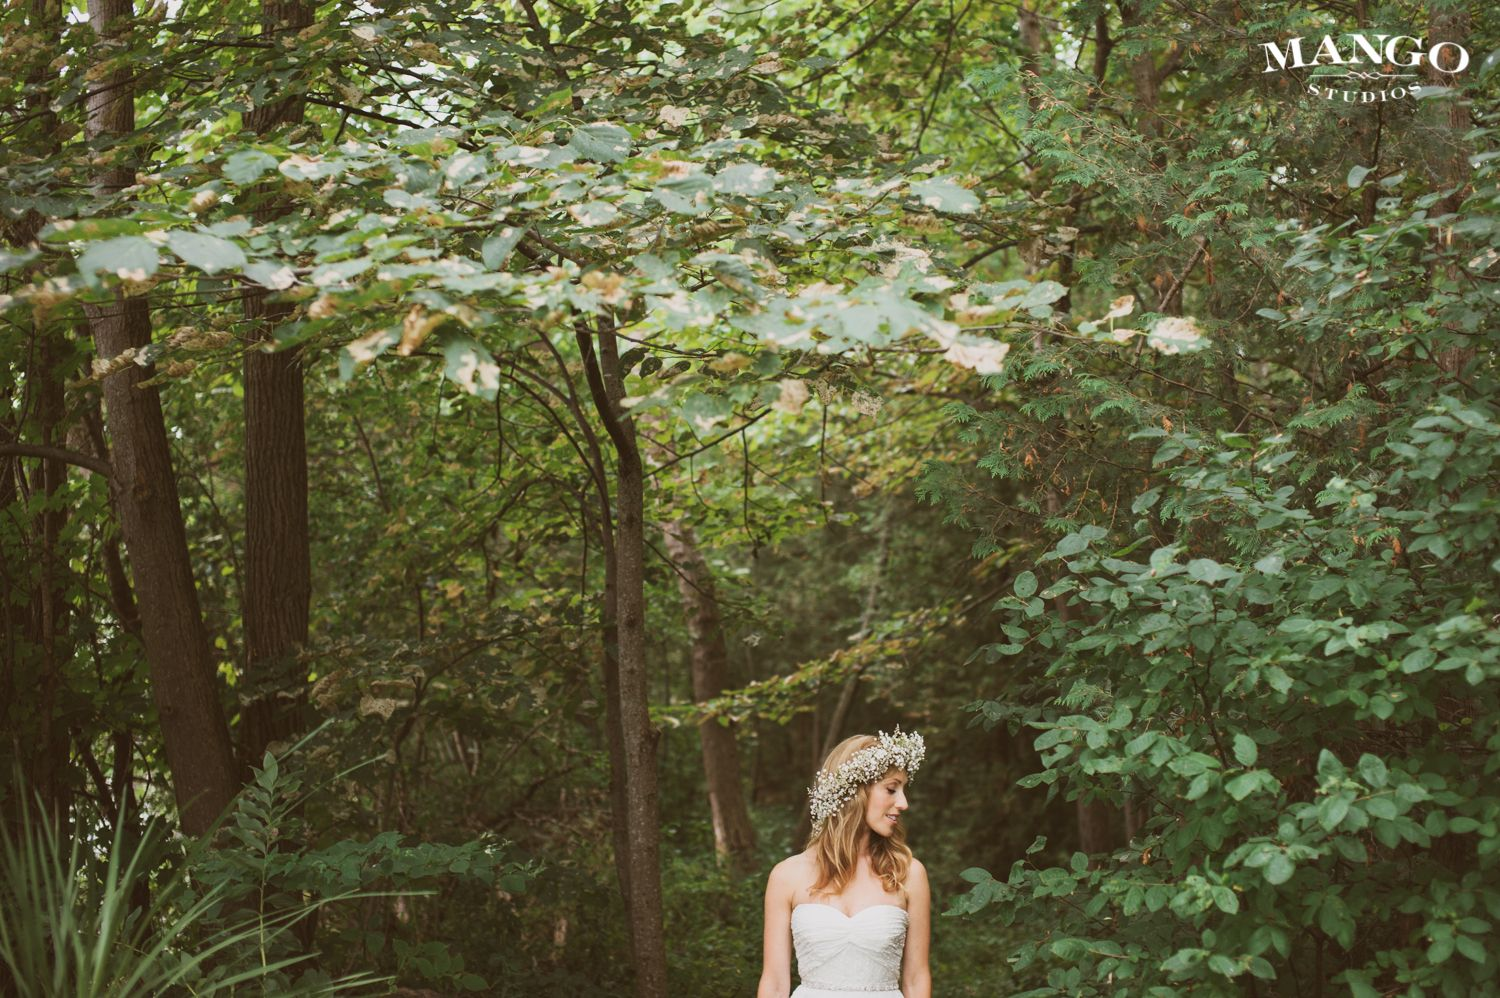 A Match For Nature #bride #nature #outdoors #green #weddings #white #flowers #dress #flowercrown #glowing #ideas #weddinginspiration #mangostudios Photography by Mango Studios